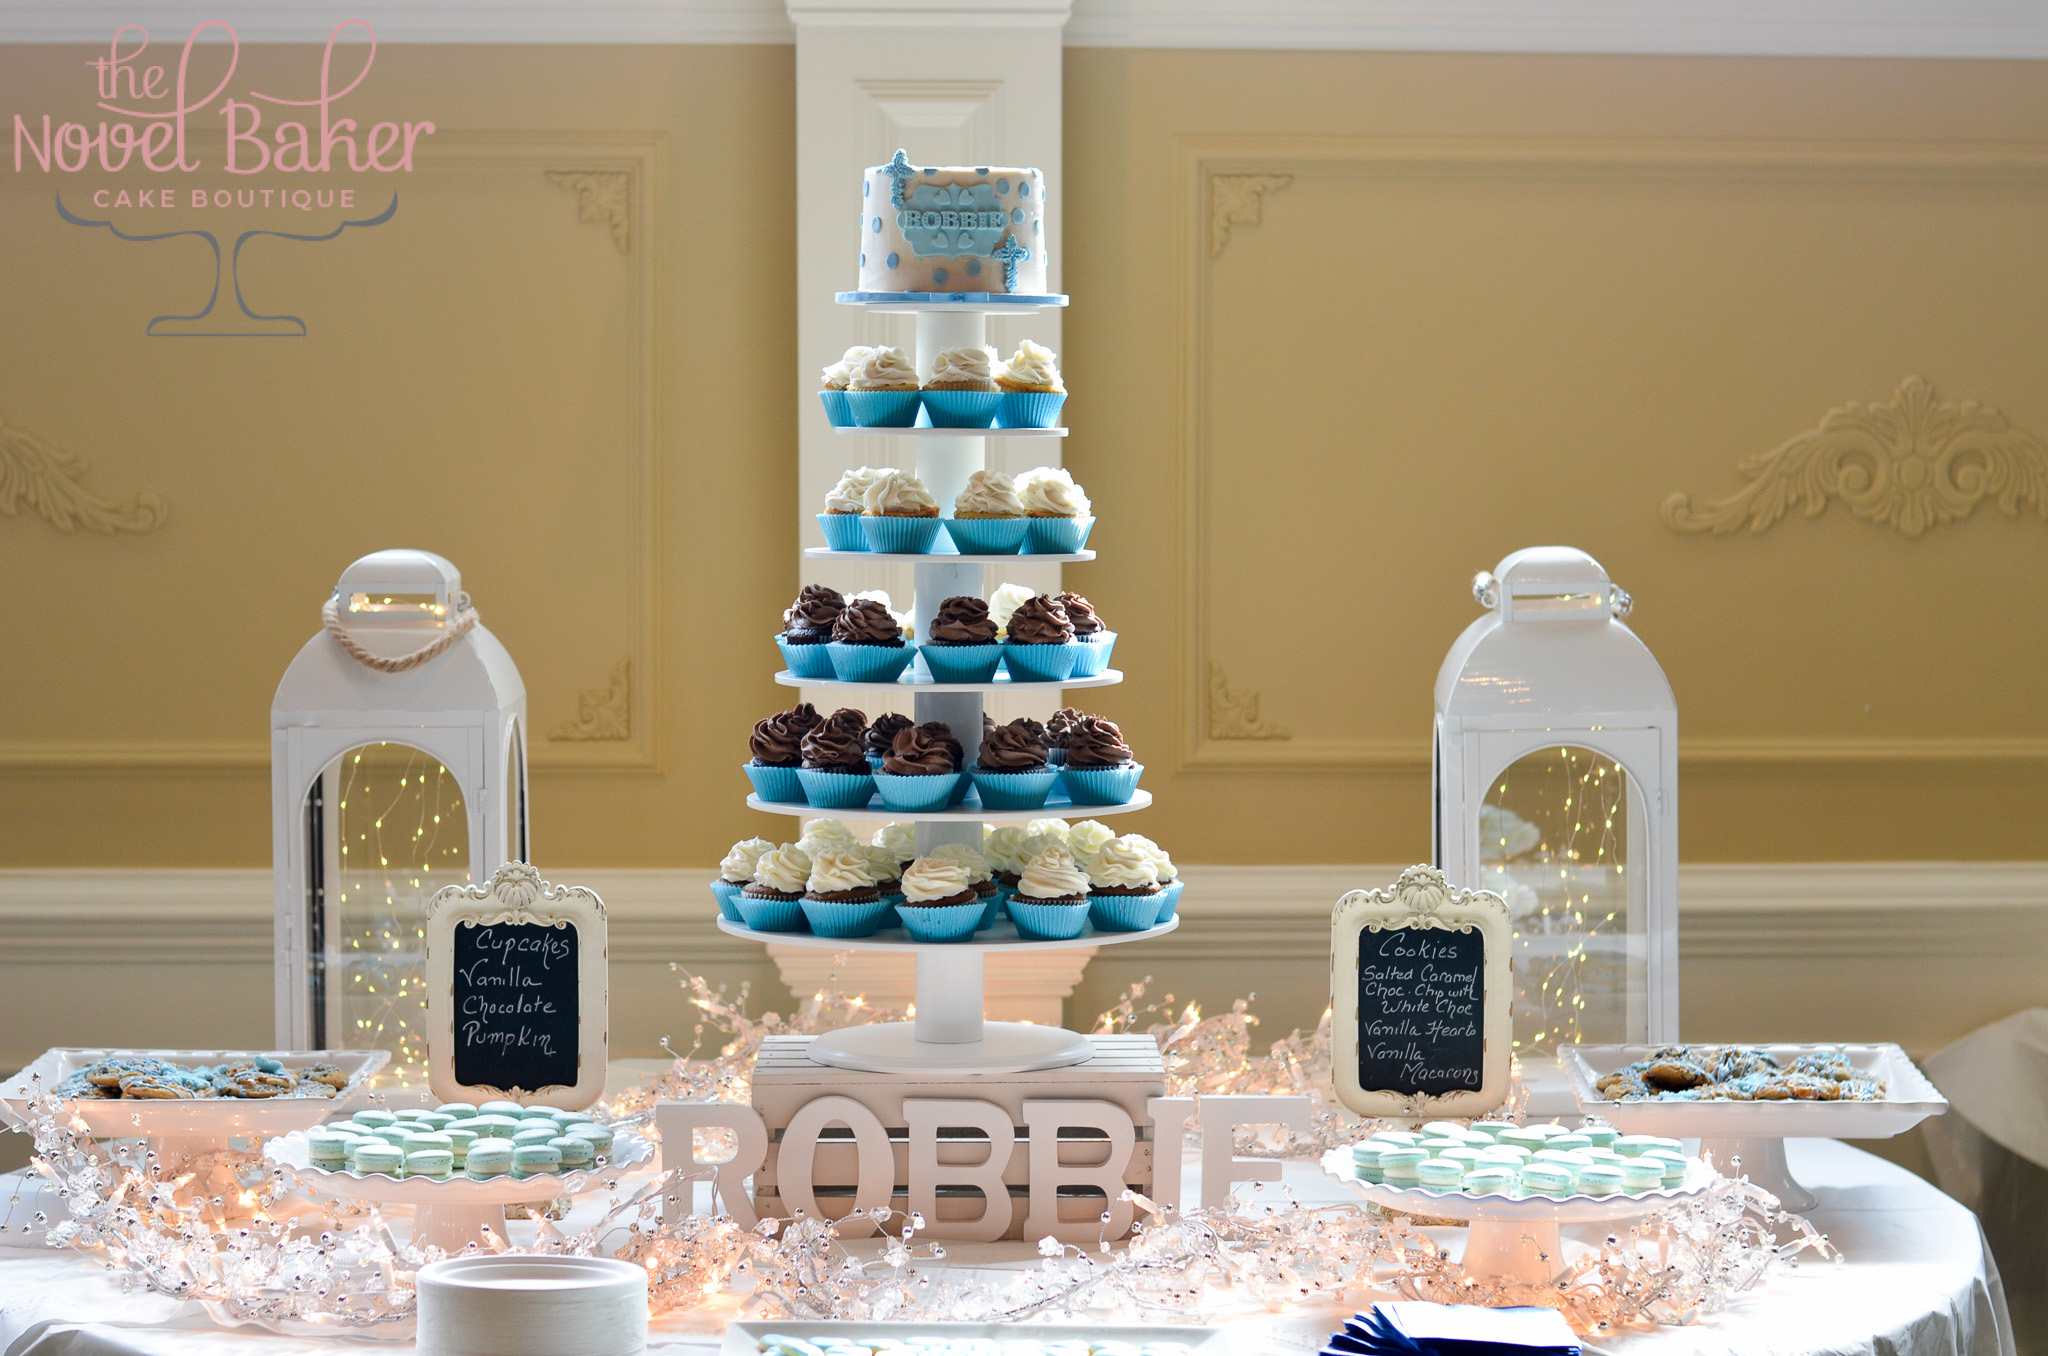 Baby Blue Sweet Table with macarons, chocolate drizzle chocolate chip cookies, petite heart sugar cookies, cupcake tower with vanilla and chocolate cupcakes in blue liners with a polka dot topper cake